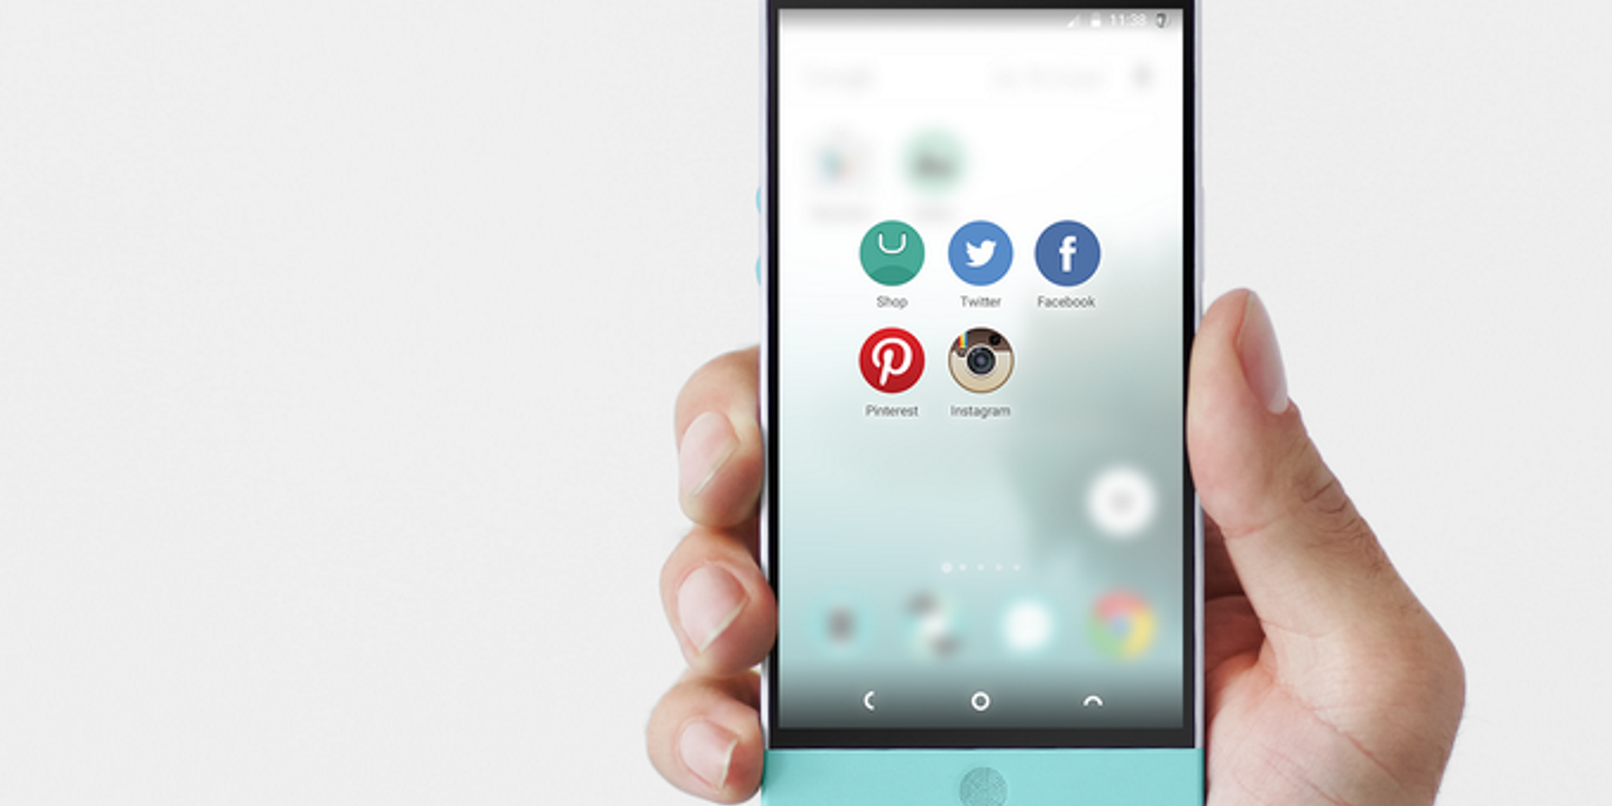 Nextbit's Robin Android phone is a glimpse of a cloud-first future that's still a long way off